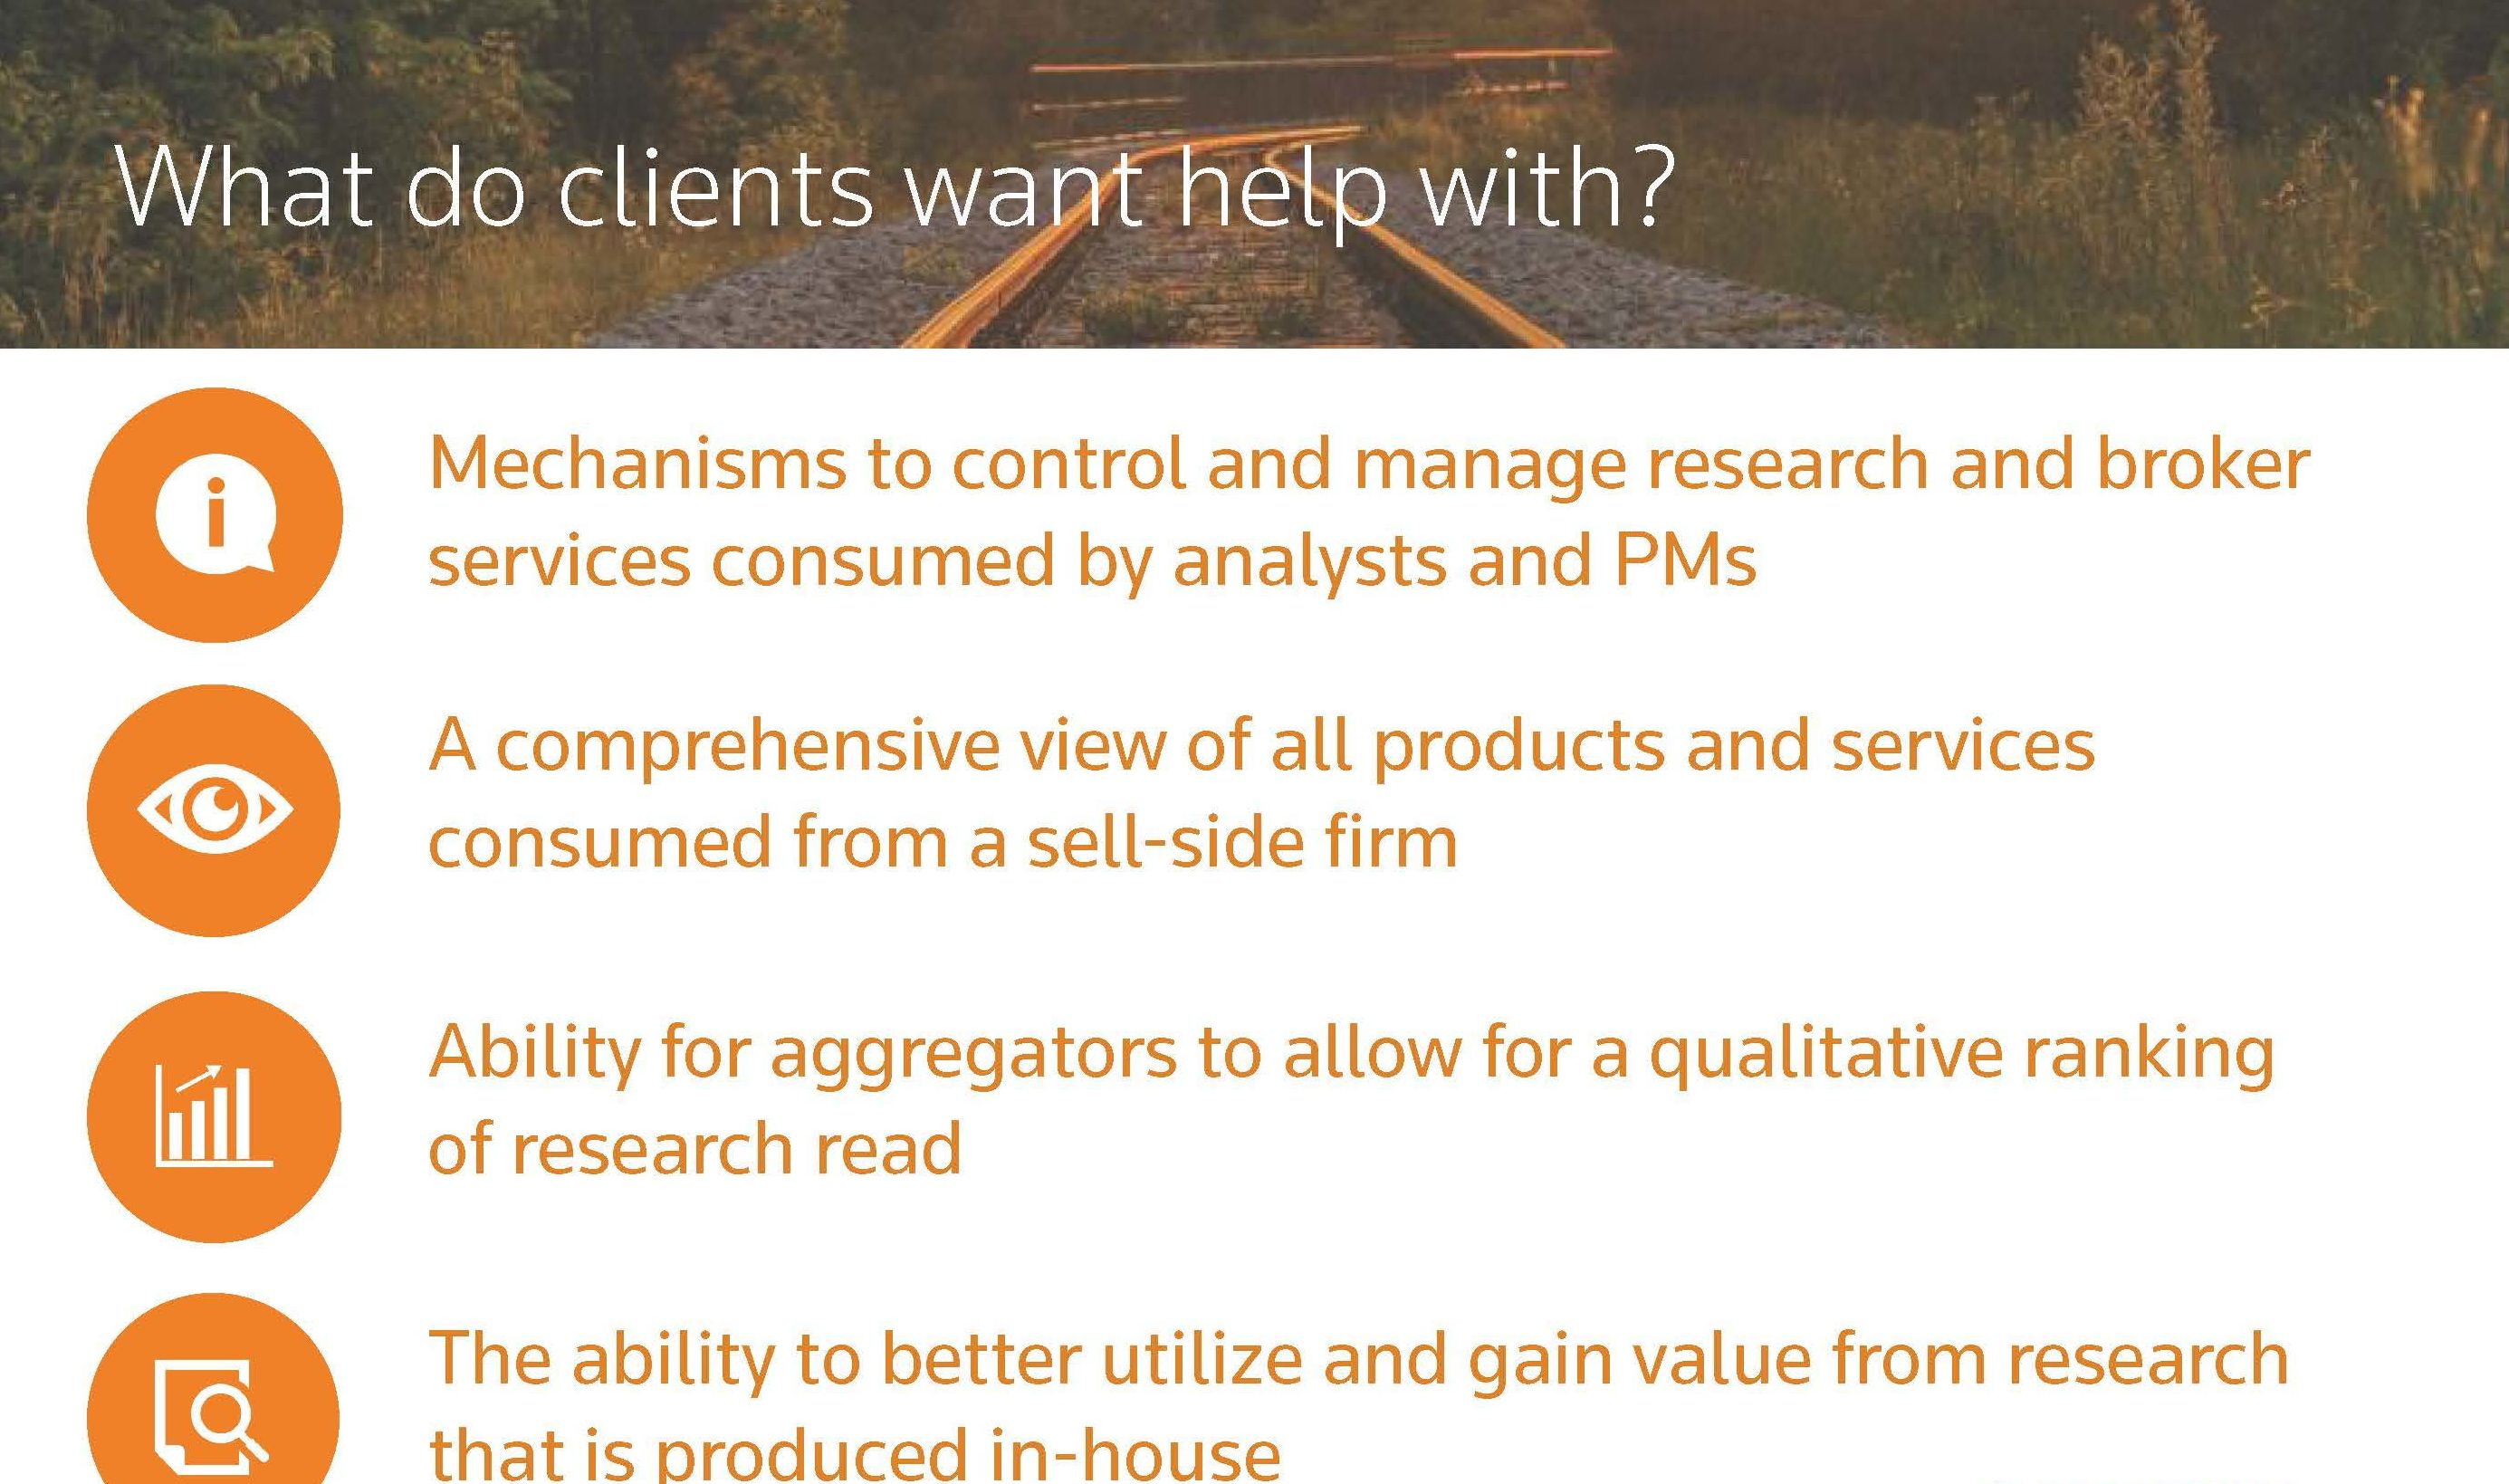 What do clients want help with?